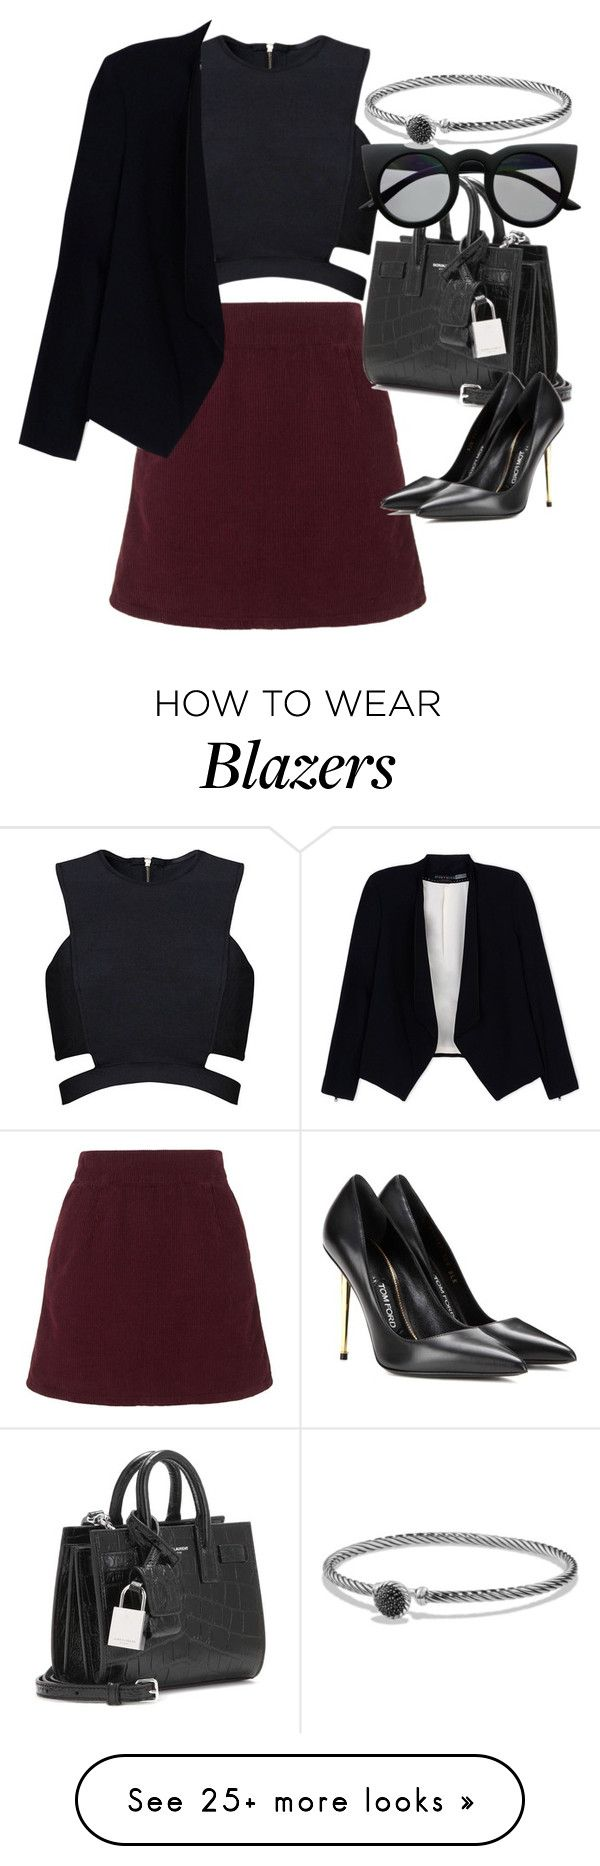 """Untitled #3268"" by glitter-the-world on Polyvore featuring moda, Topshop, Posh Girl, Alice + Olivia, Yves Saint Laurent, Tom Ford, Retrò e David Yurman"